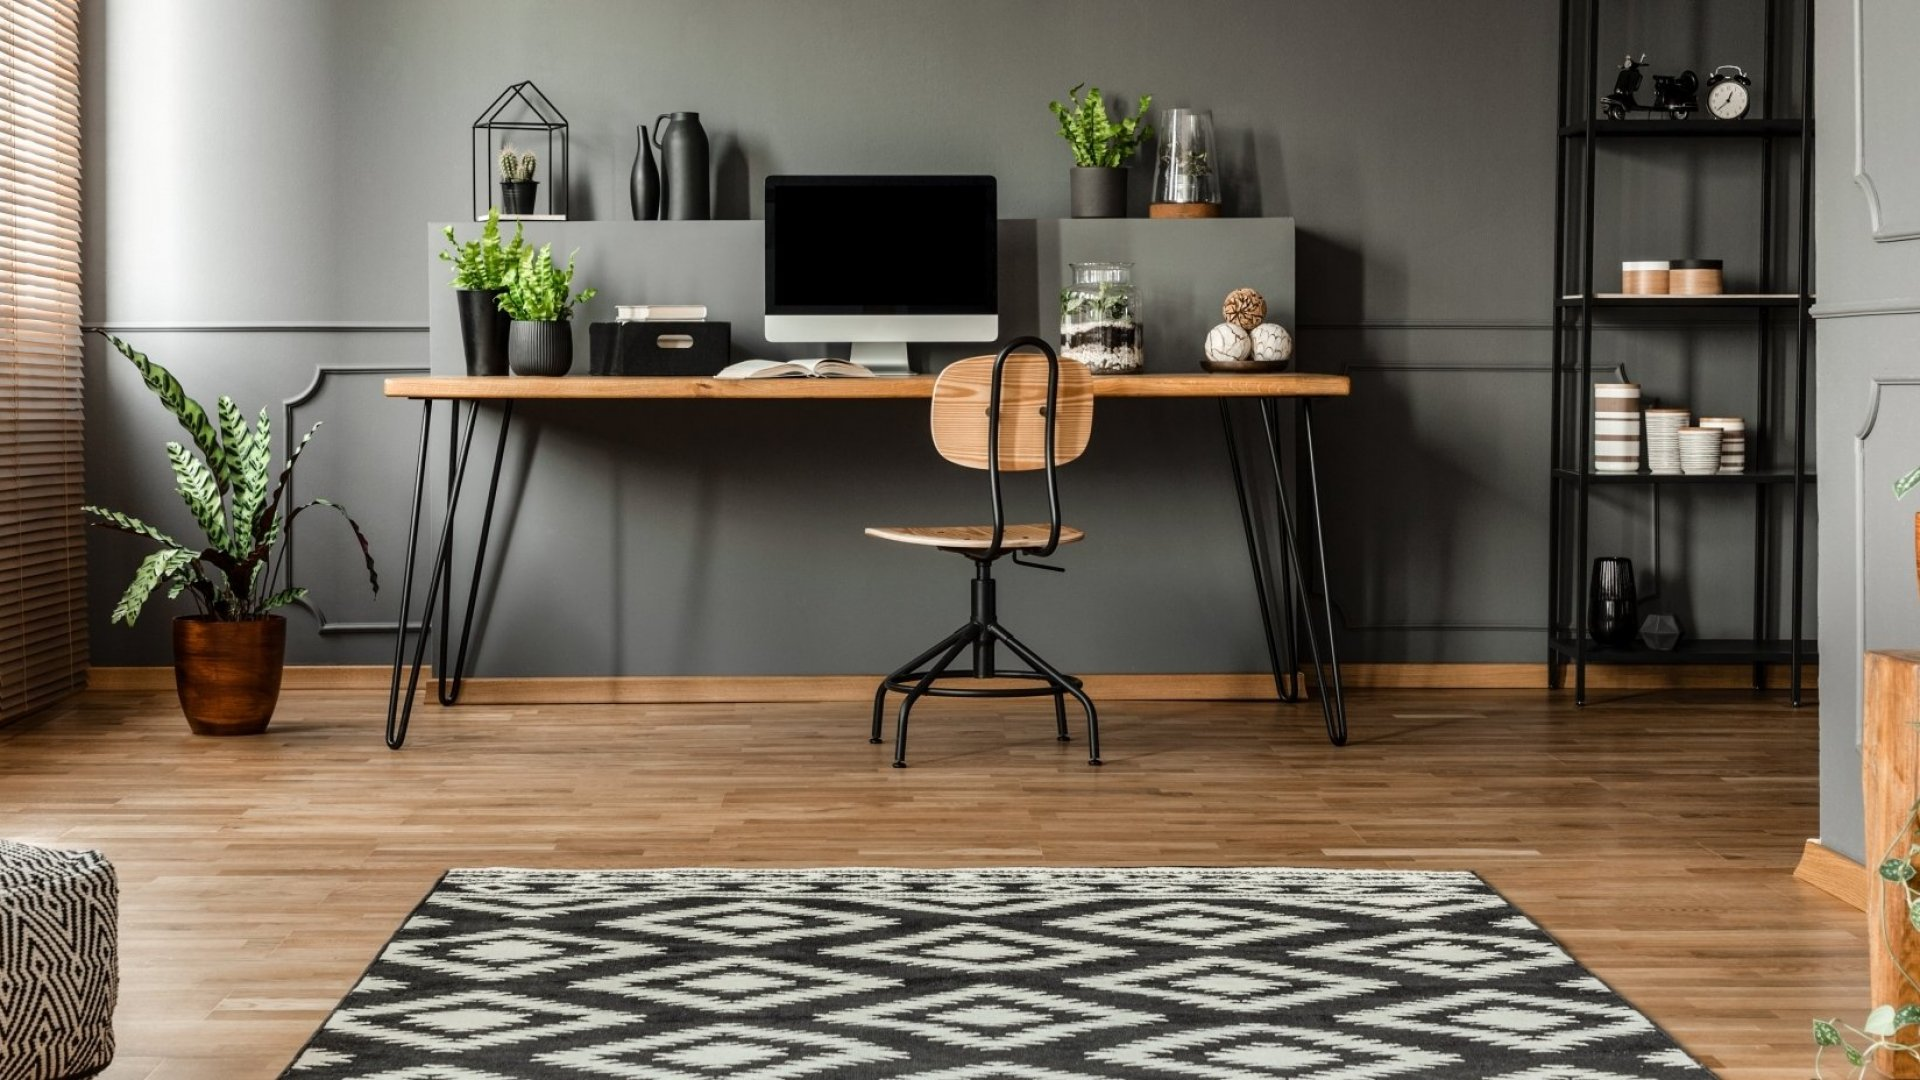 Your Home Office Is an Ergonomic Time Bomb. Here's How to Make It Better